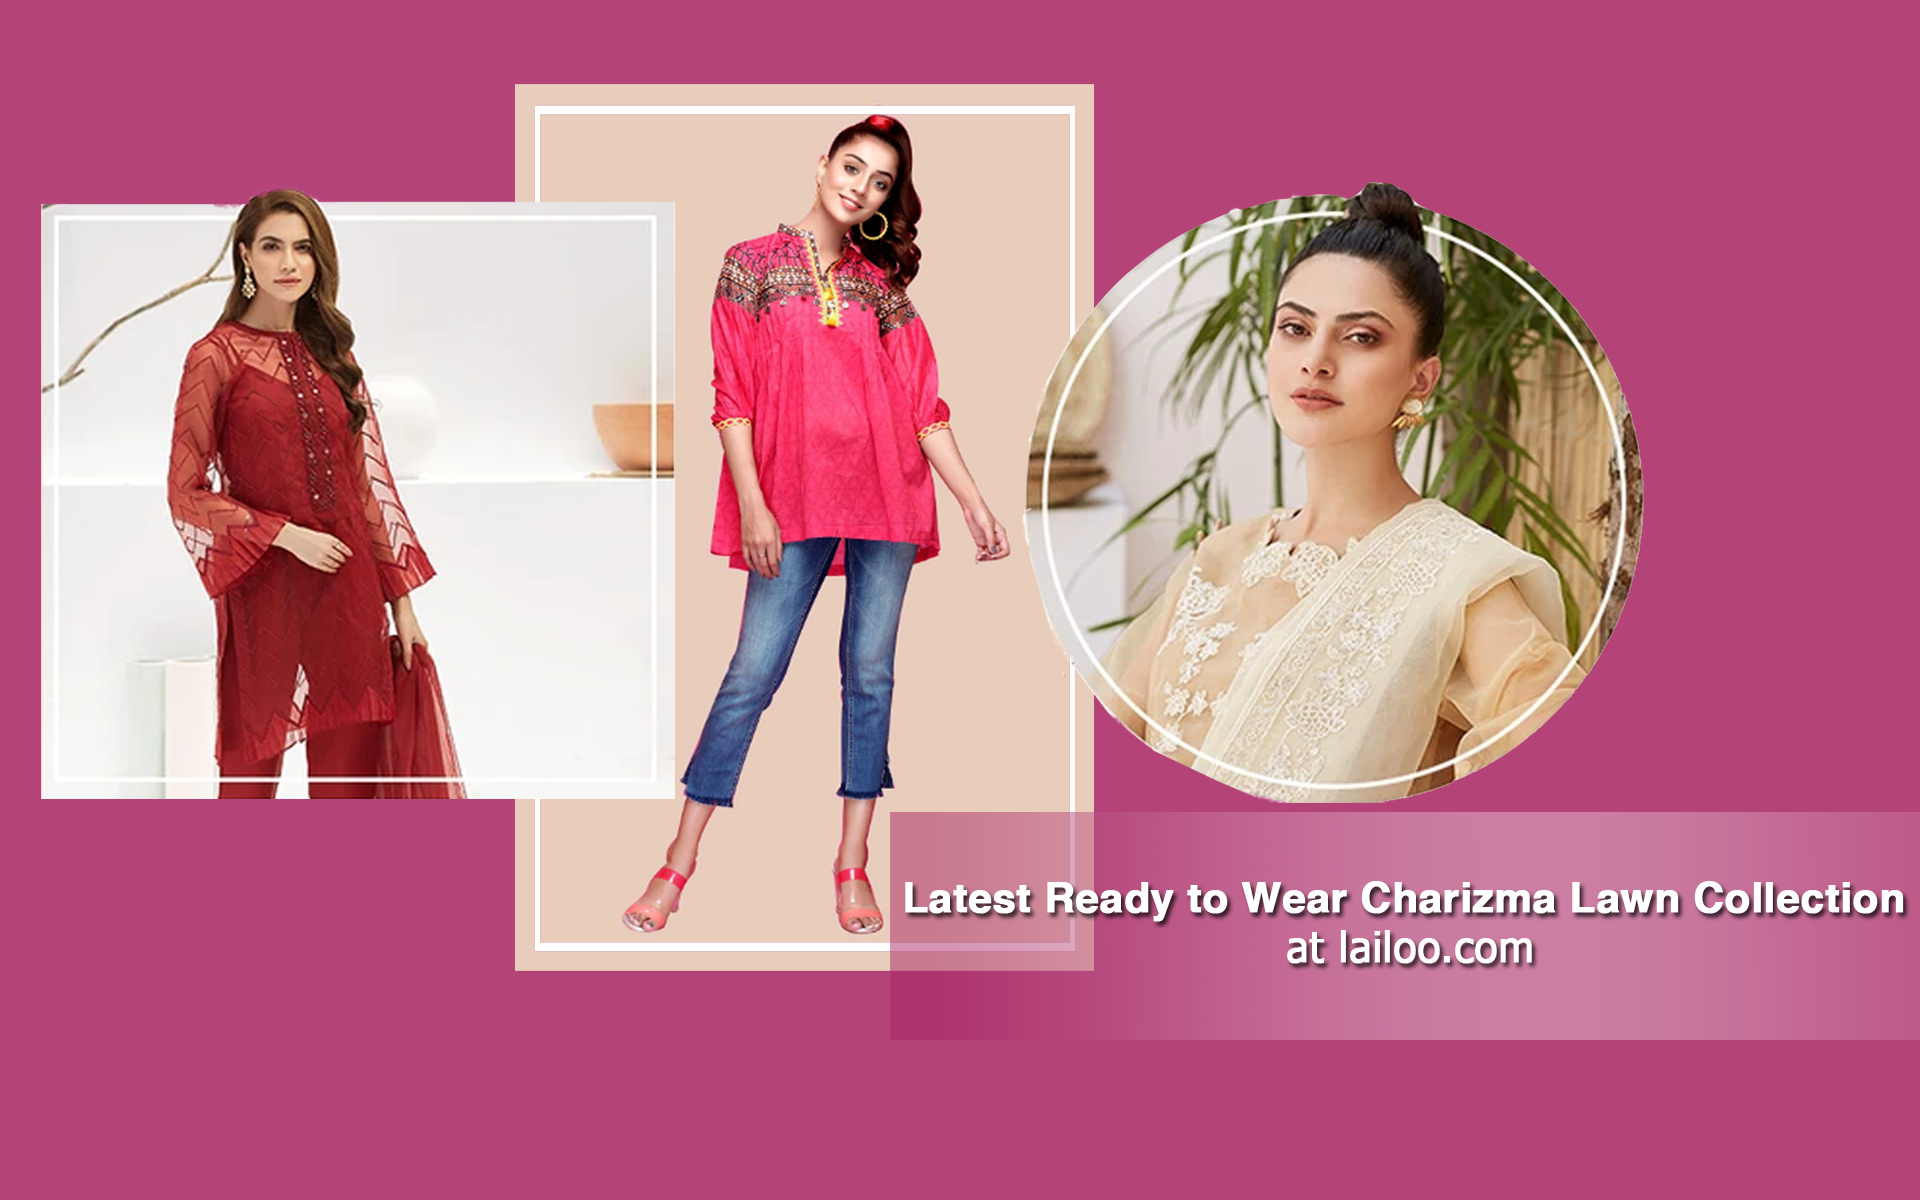 Latest ready to wear Charizma lawn collection